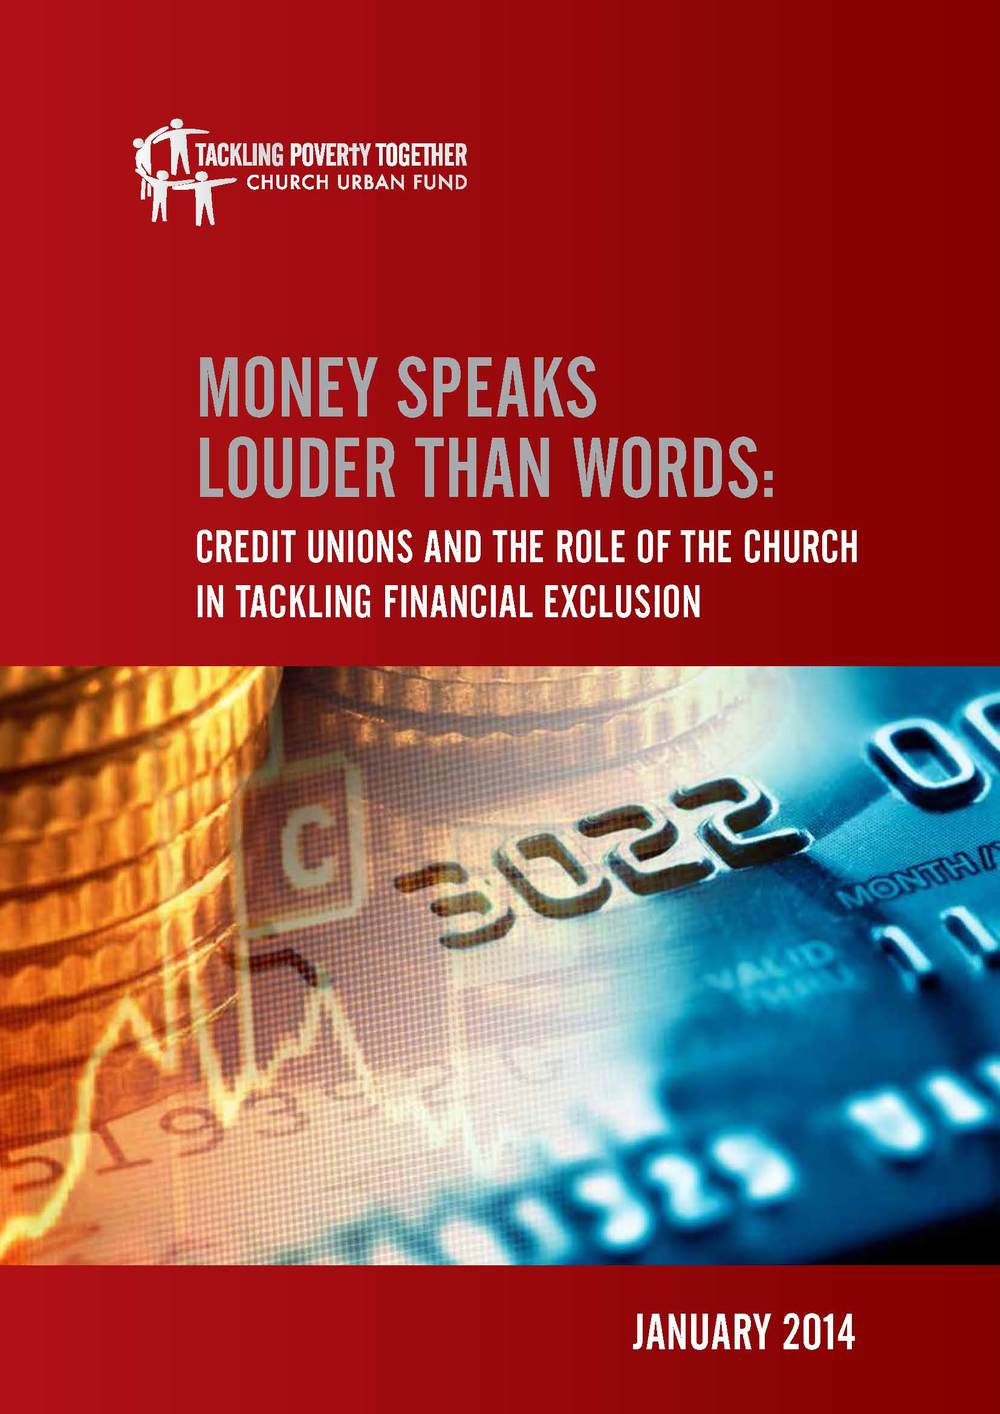 Money speaks louder than words: Credit Unions and the role of the Church in tackling financial exclusion Church Urban Fund Download PDF (232kb)